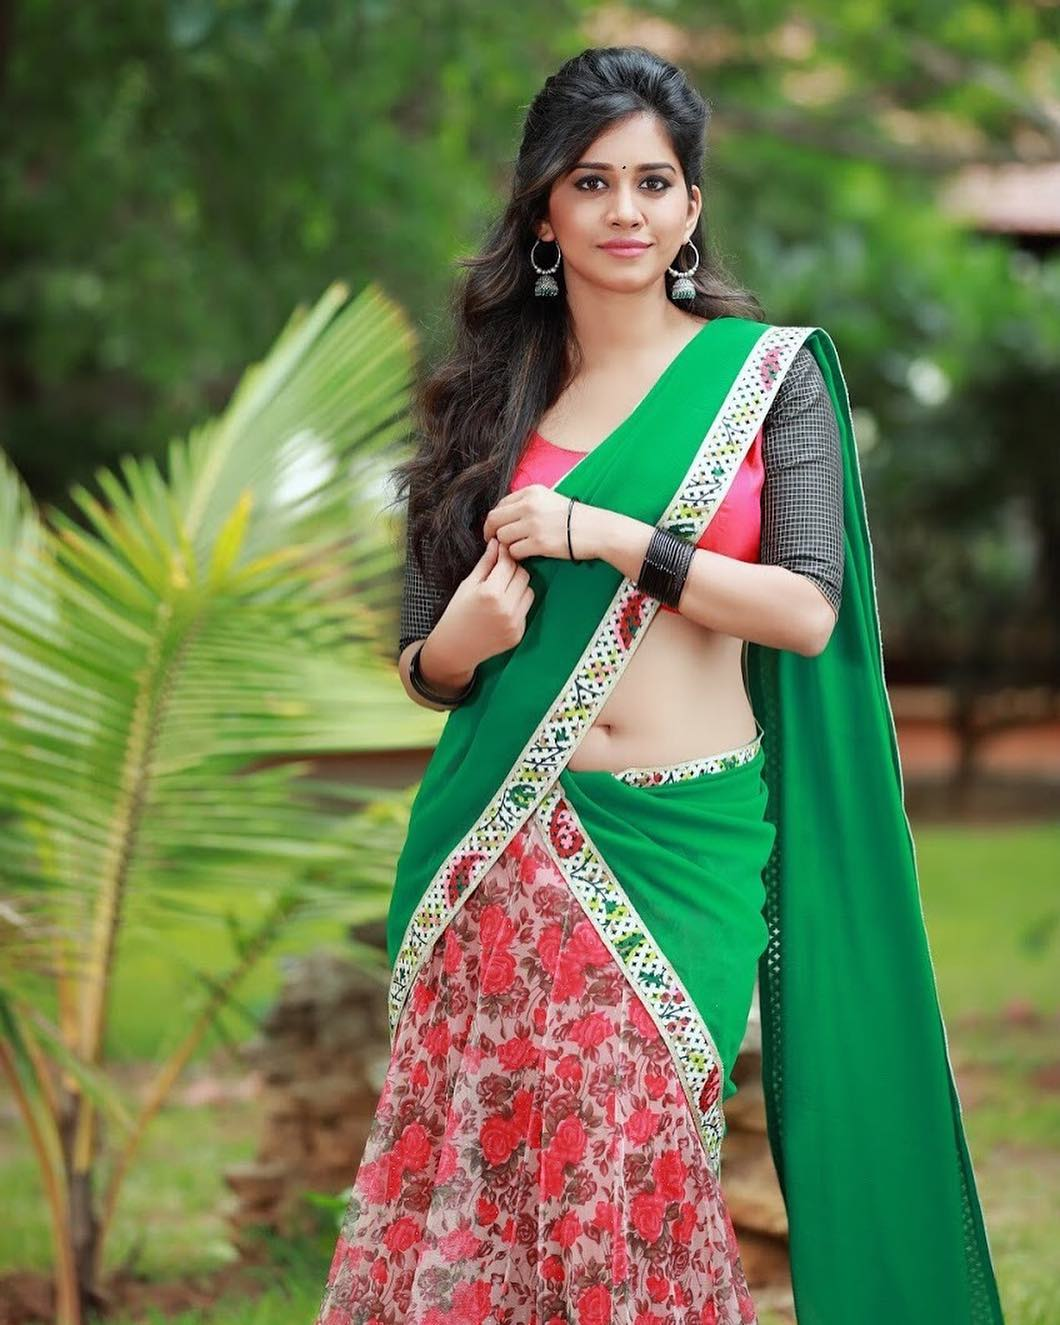 Amazing 23 Nabha Natesh Hot Photos Free Download-3301